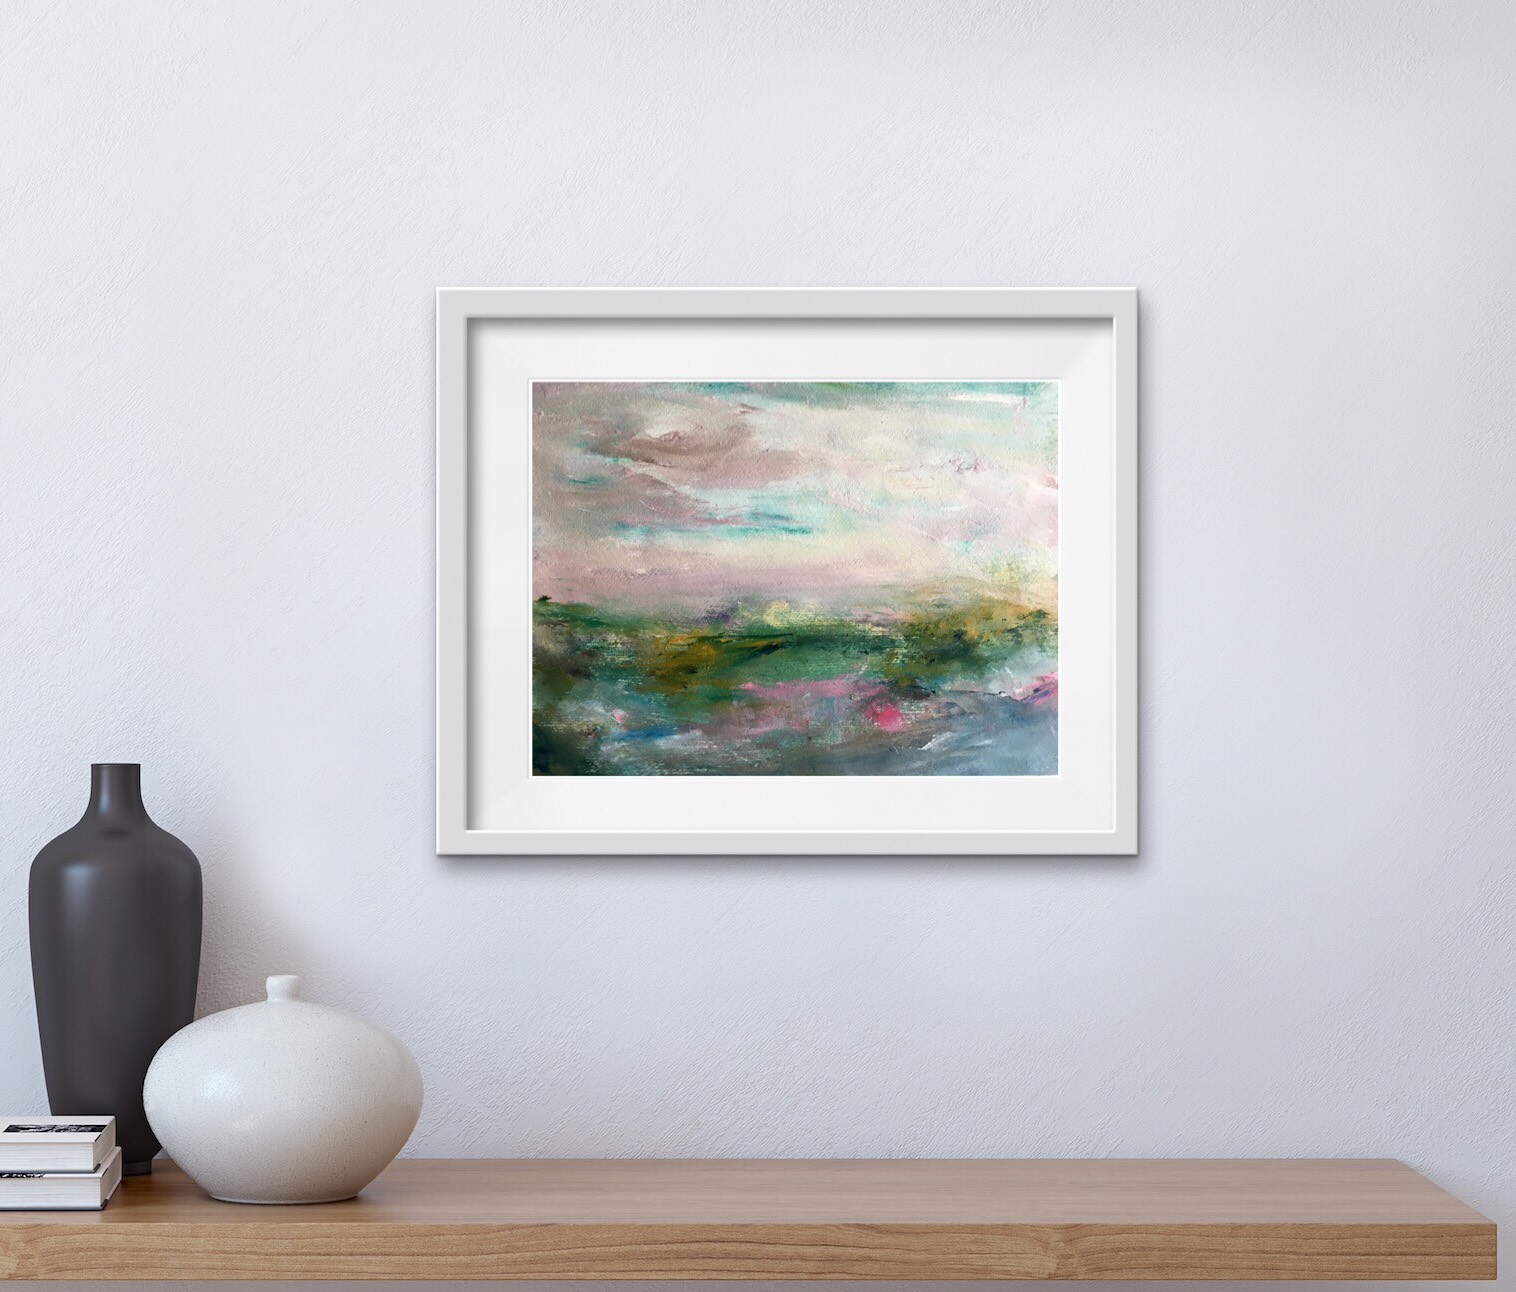 buy painting inspired by turner